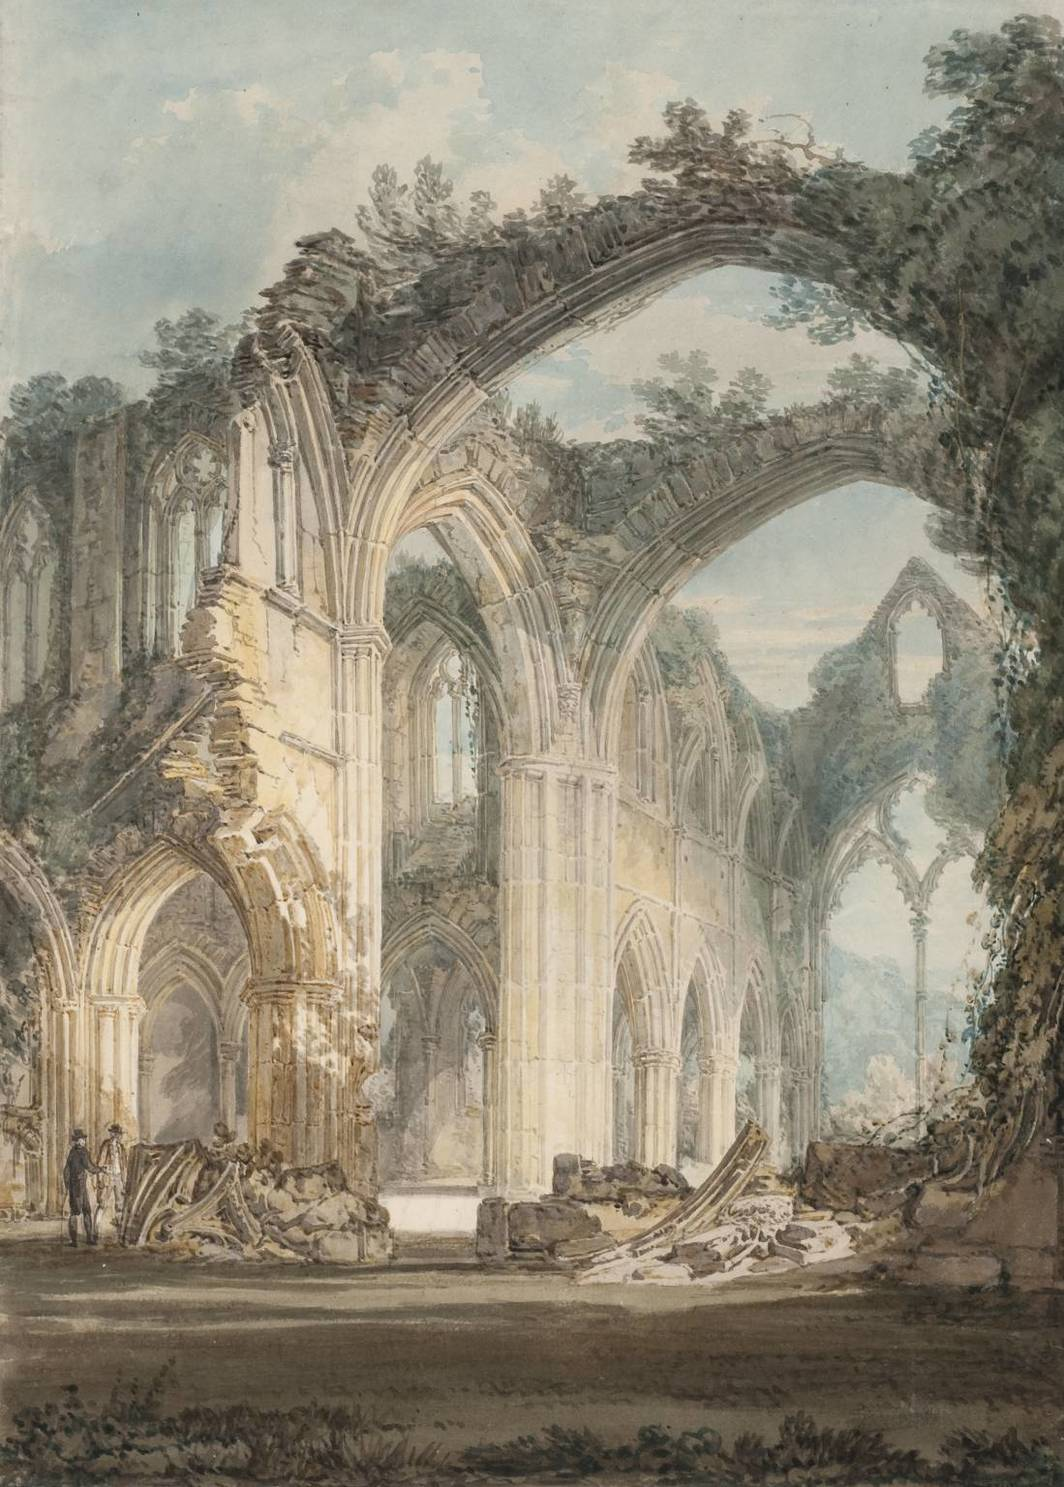 J. M. W. Turner, Tintern Abbey: The Crossing and Chancel, Looking towards the East Window, 1794, graphite and watercolor on paper.